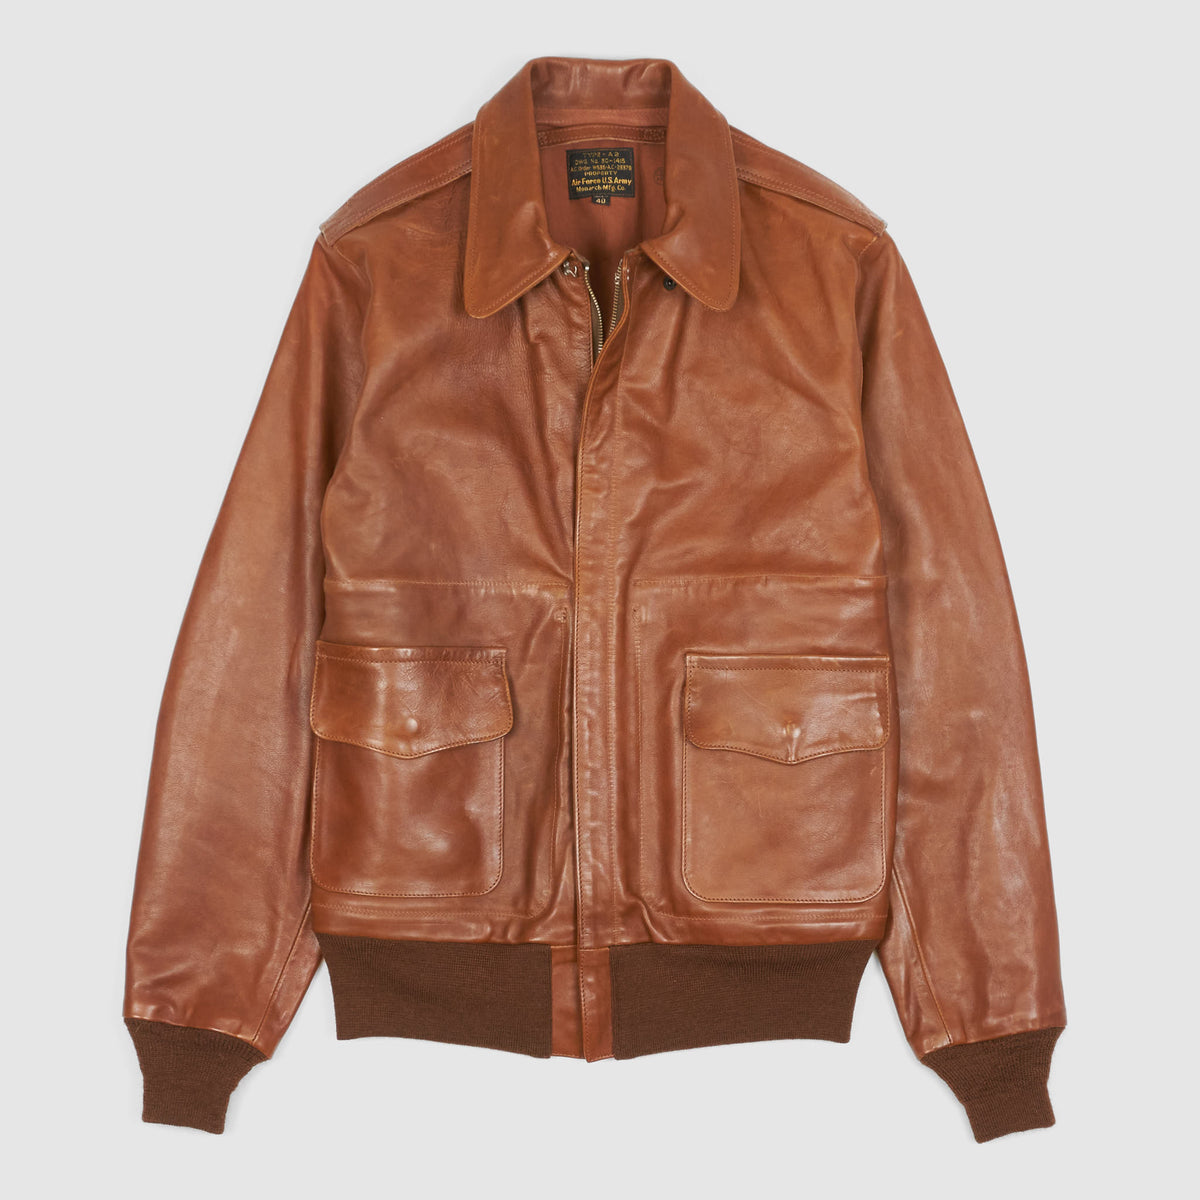 Eastman Leather Jacket Type A-2 352ND